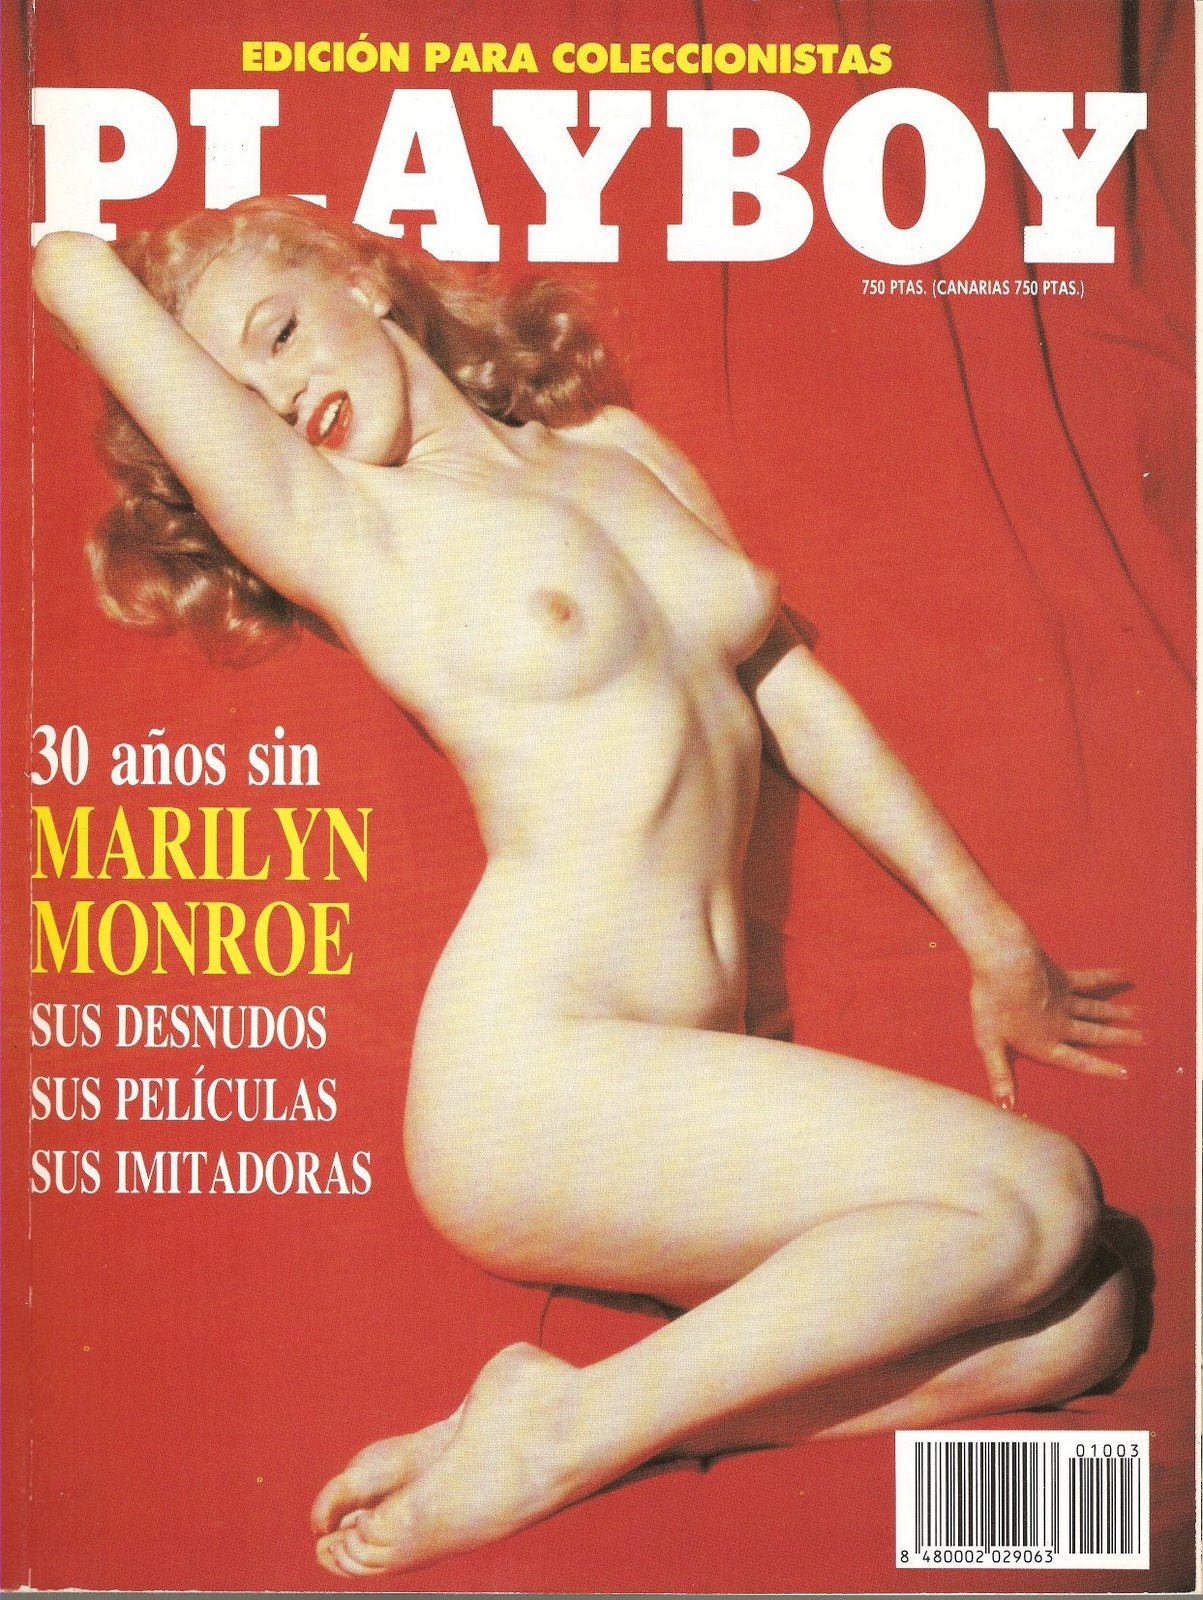 news article Playboys special edition Marilyn Monroes nude photos th anniversary death.